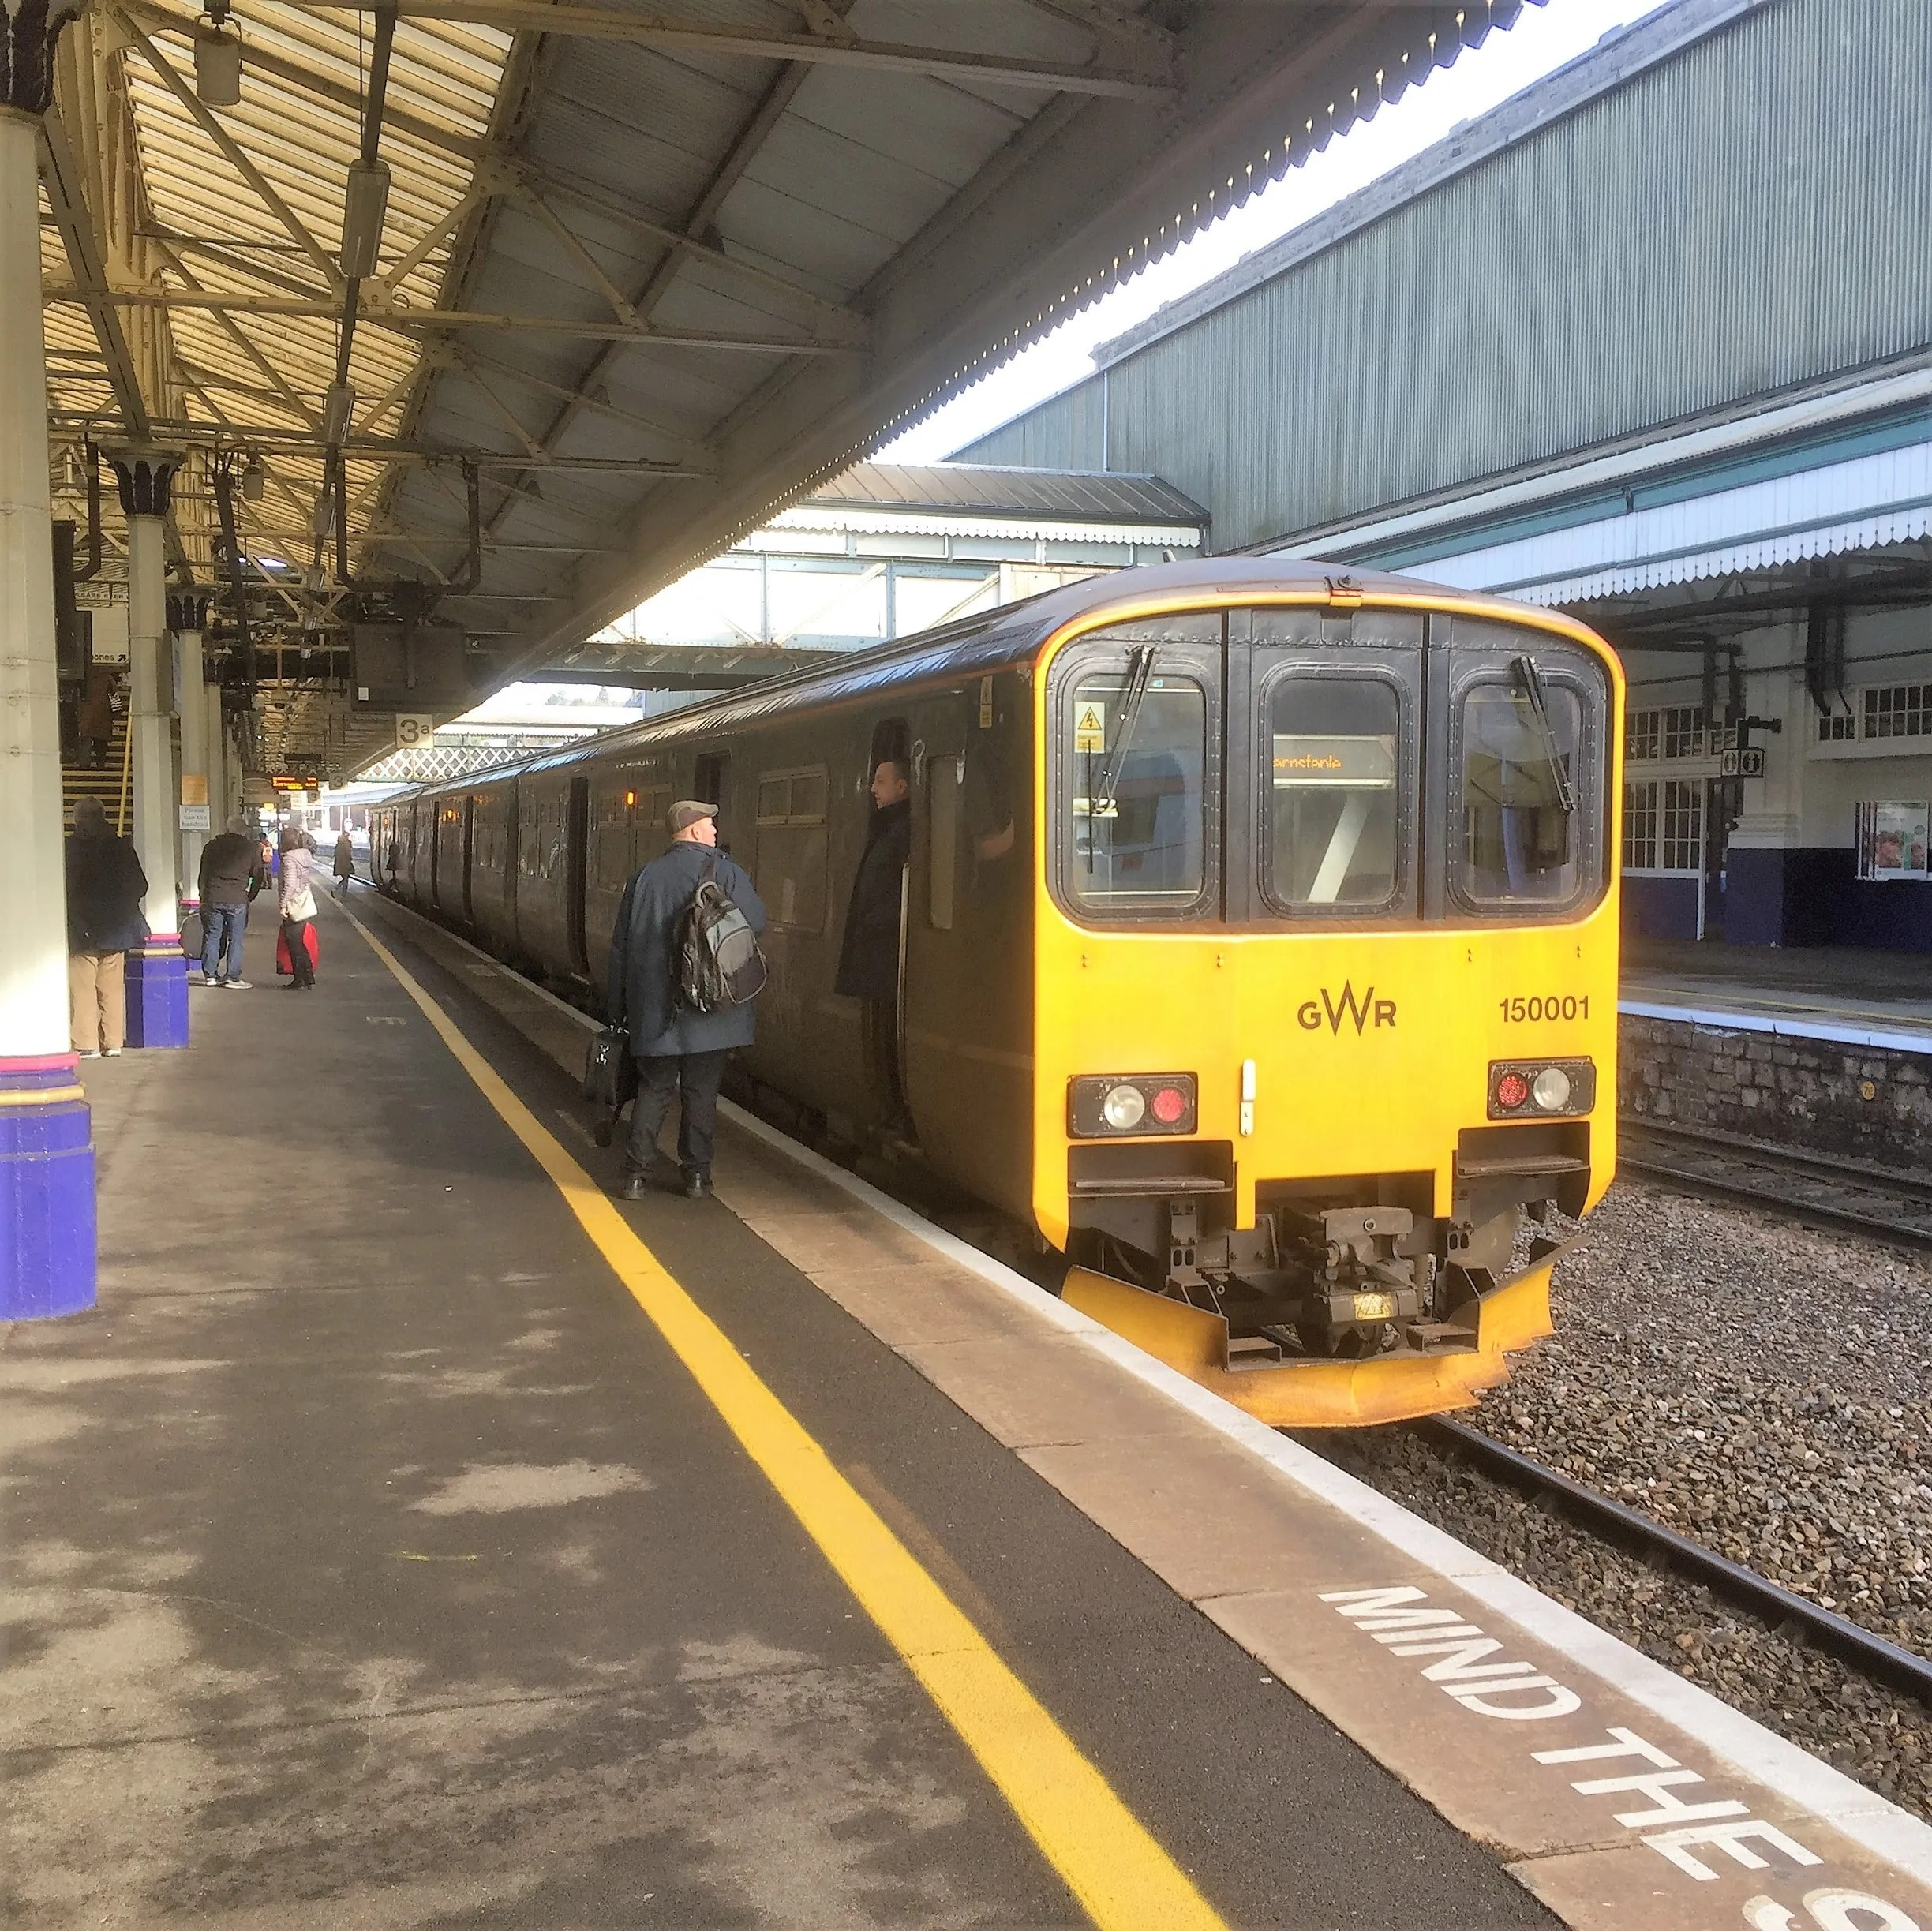 Class 150 150001 at Exeter St Davids railway station